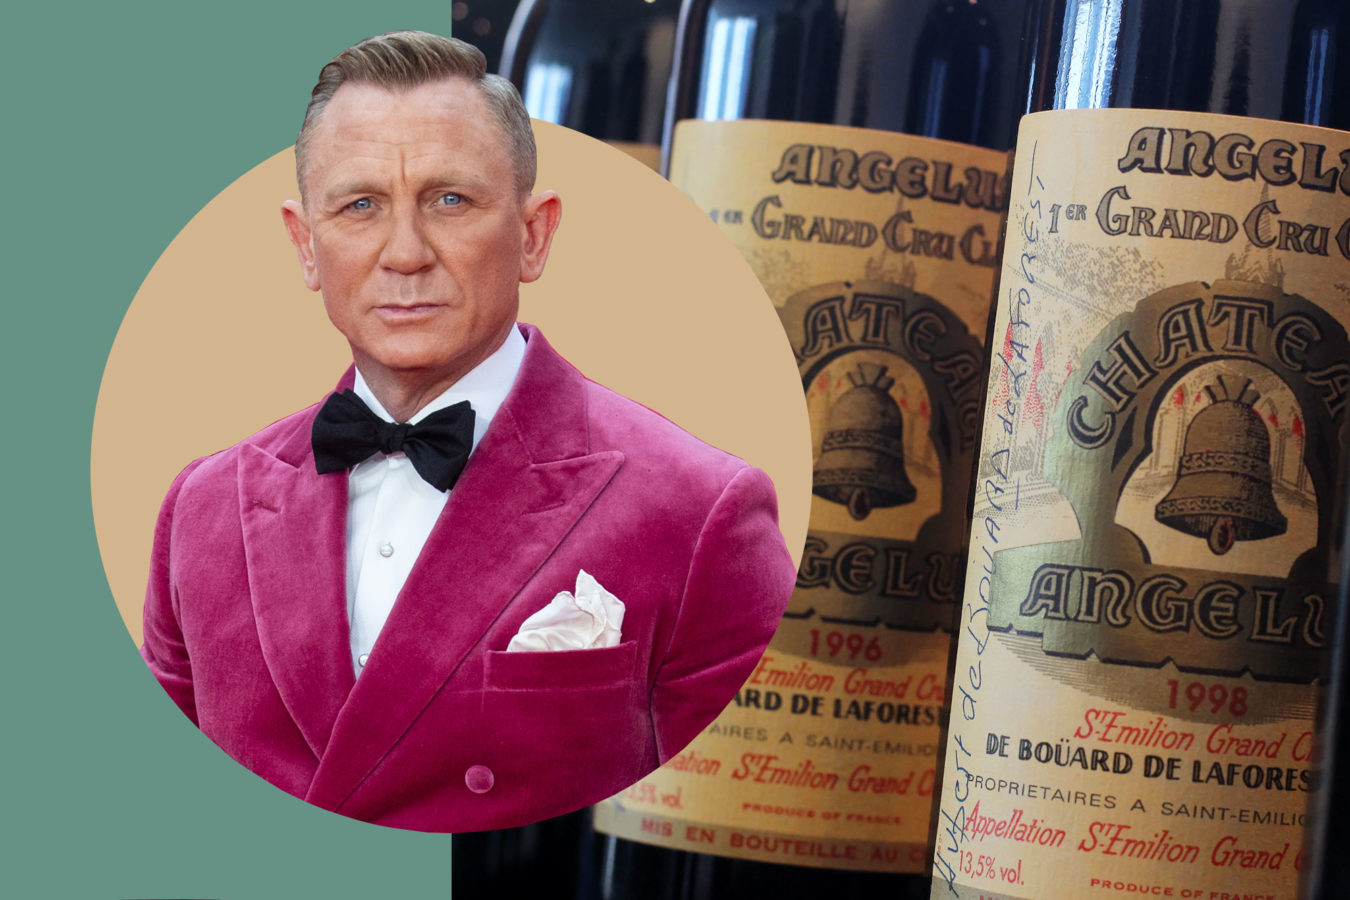 James Bond favours Bordeaux in 'No Time To Die'